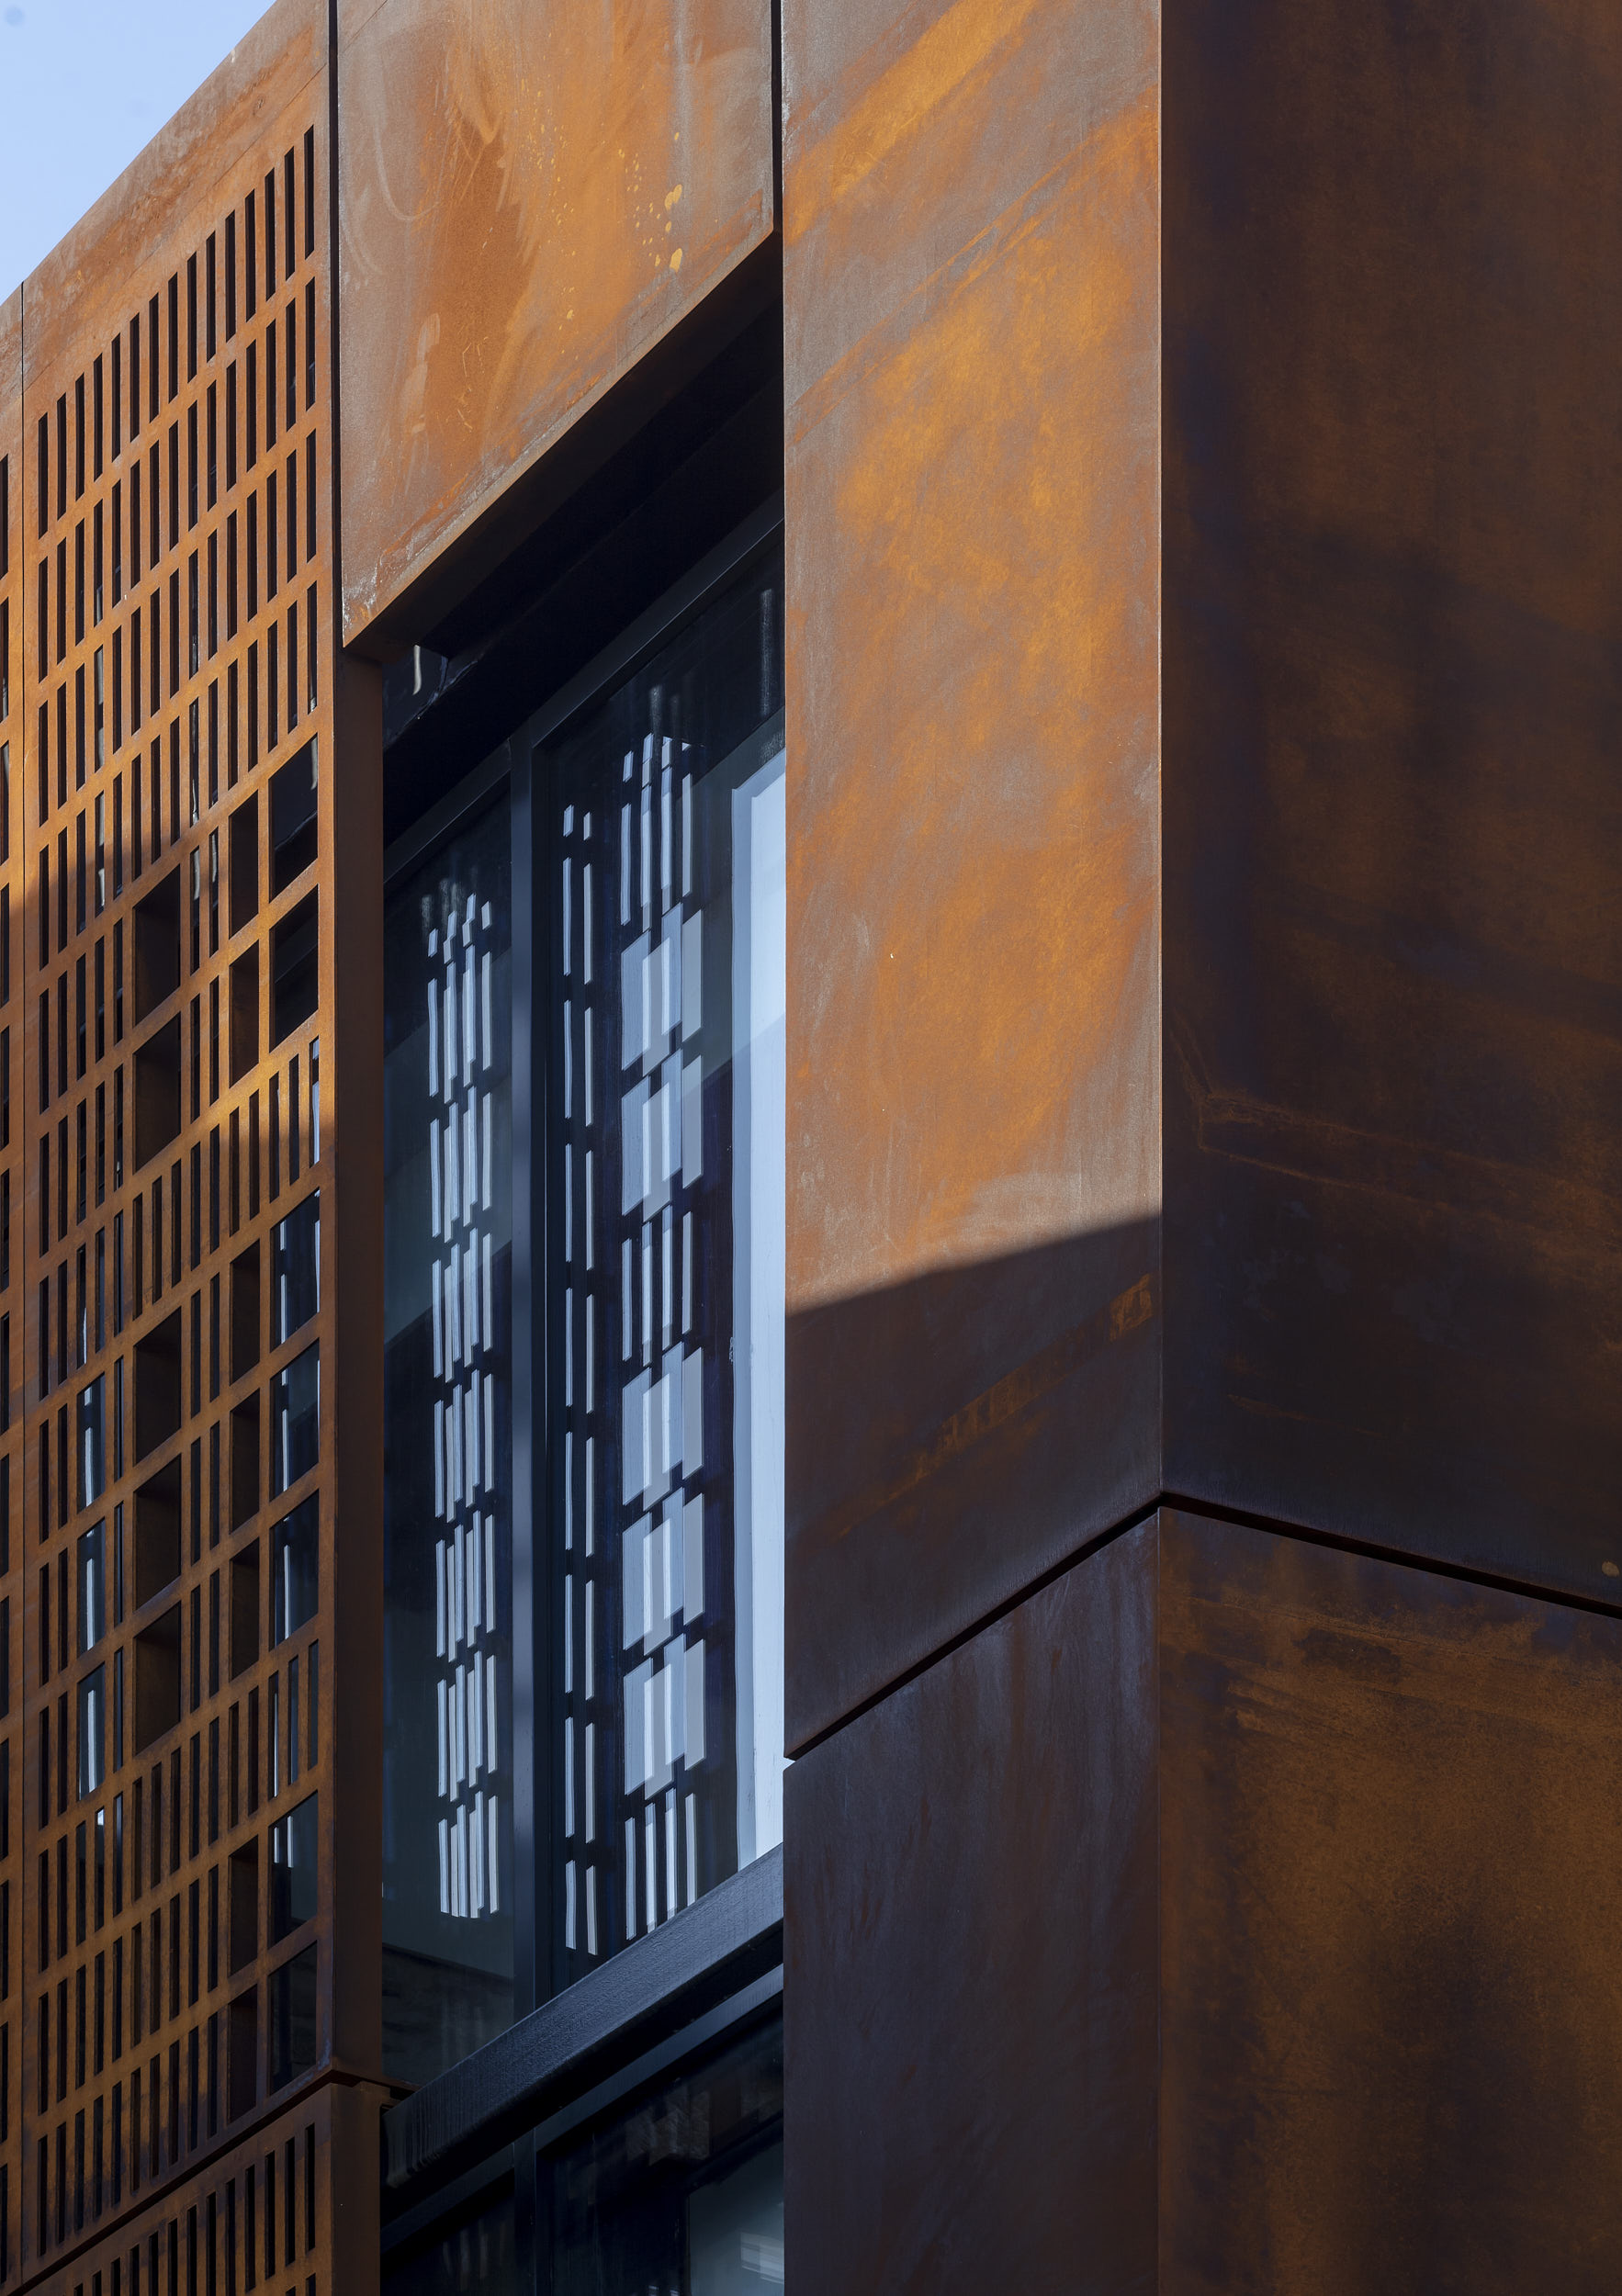 Cor-ten steel corner detail showing interface with the cladding and glazing system.